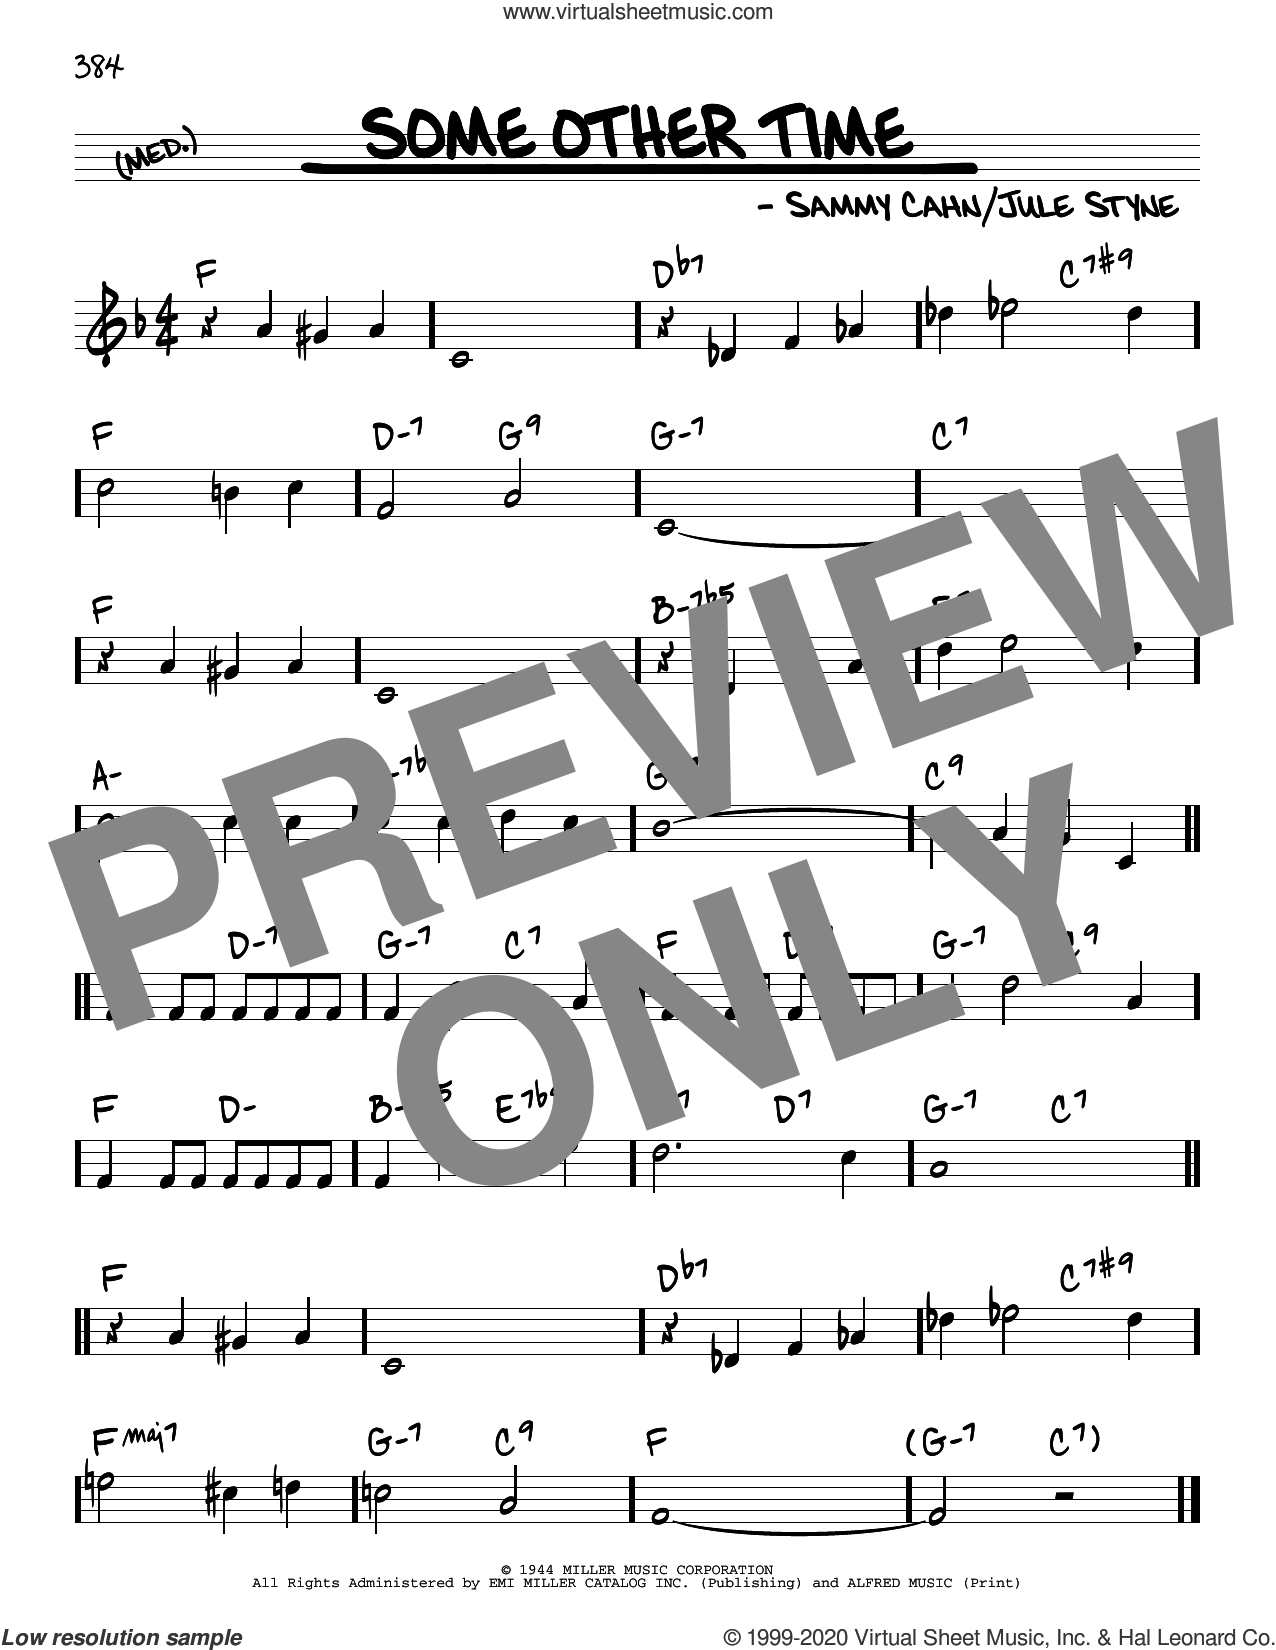 Some Other Time sheet music for voice and other instruments (real book) by Sammy Cahn and Jule Styne, intermediate skill level